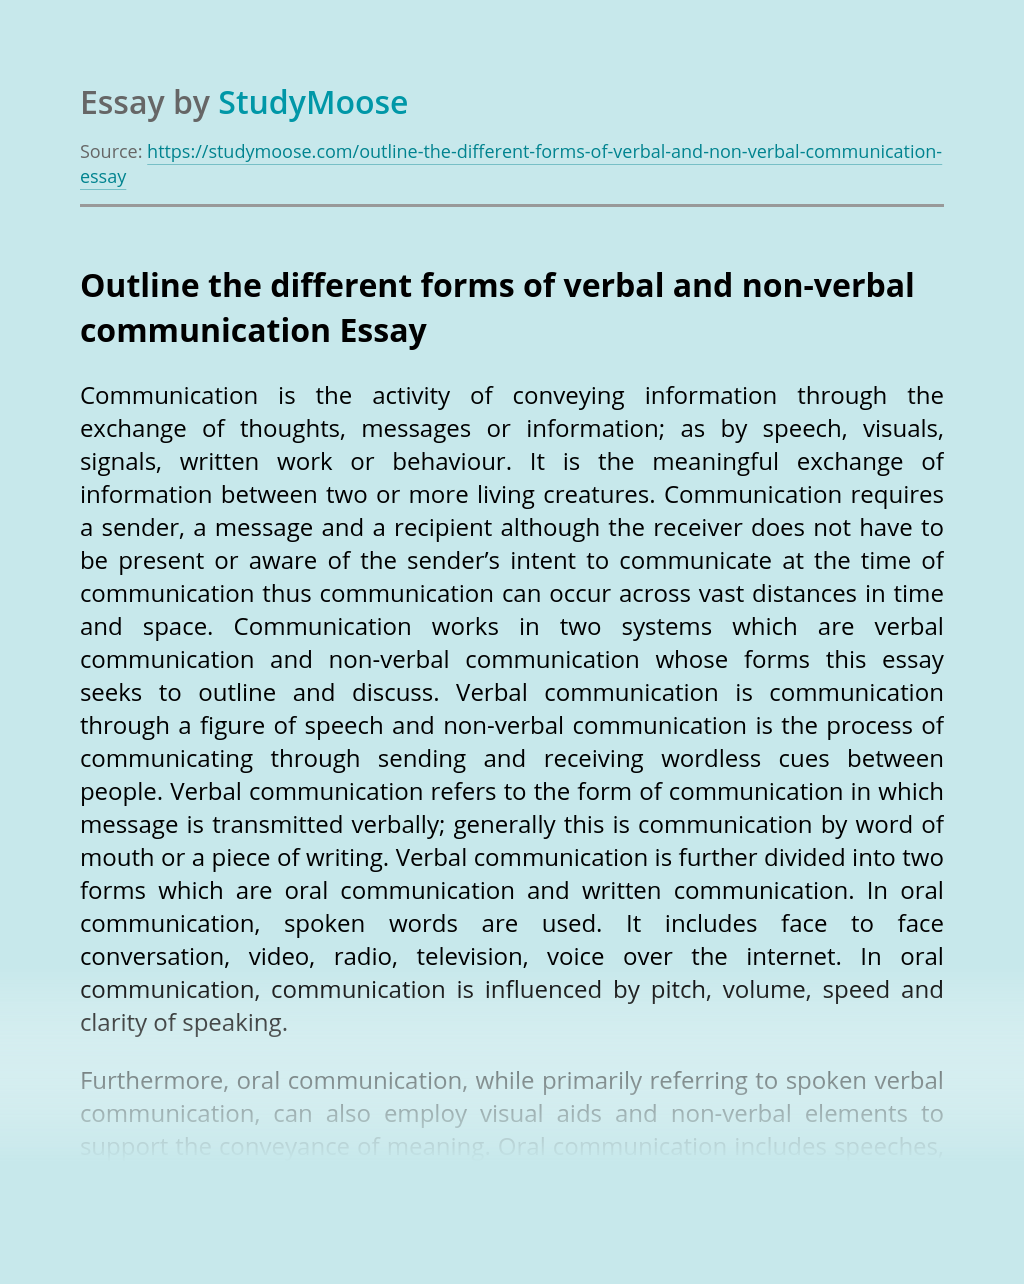 Outline the different forms of verbal and non-verbal communication